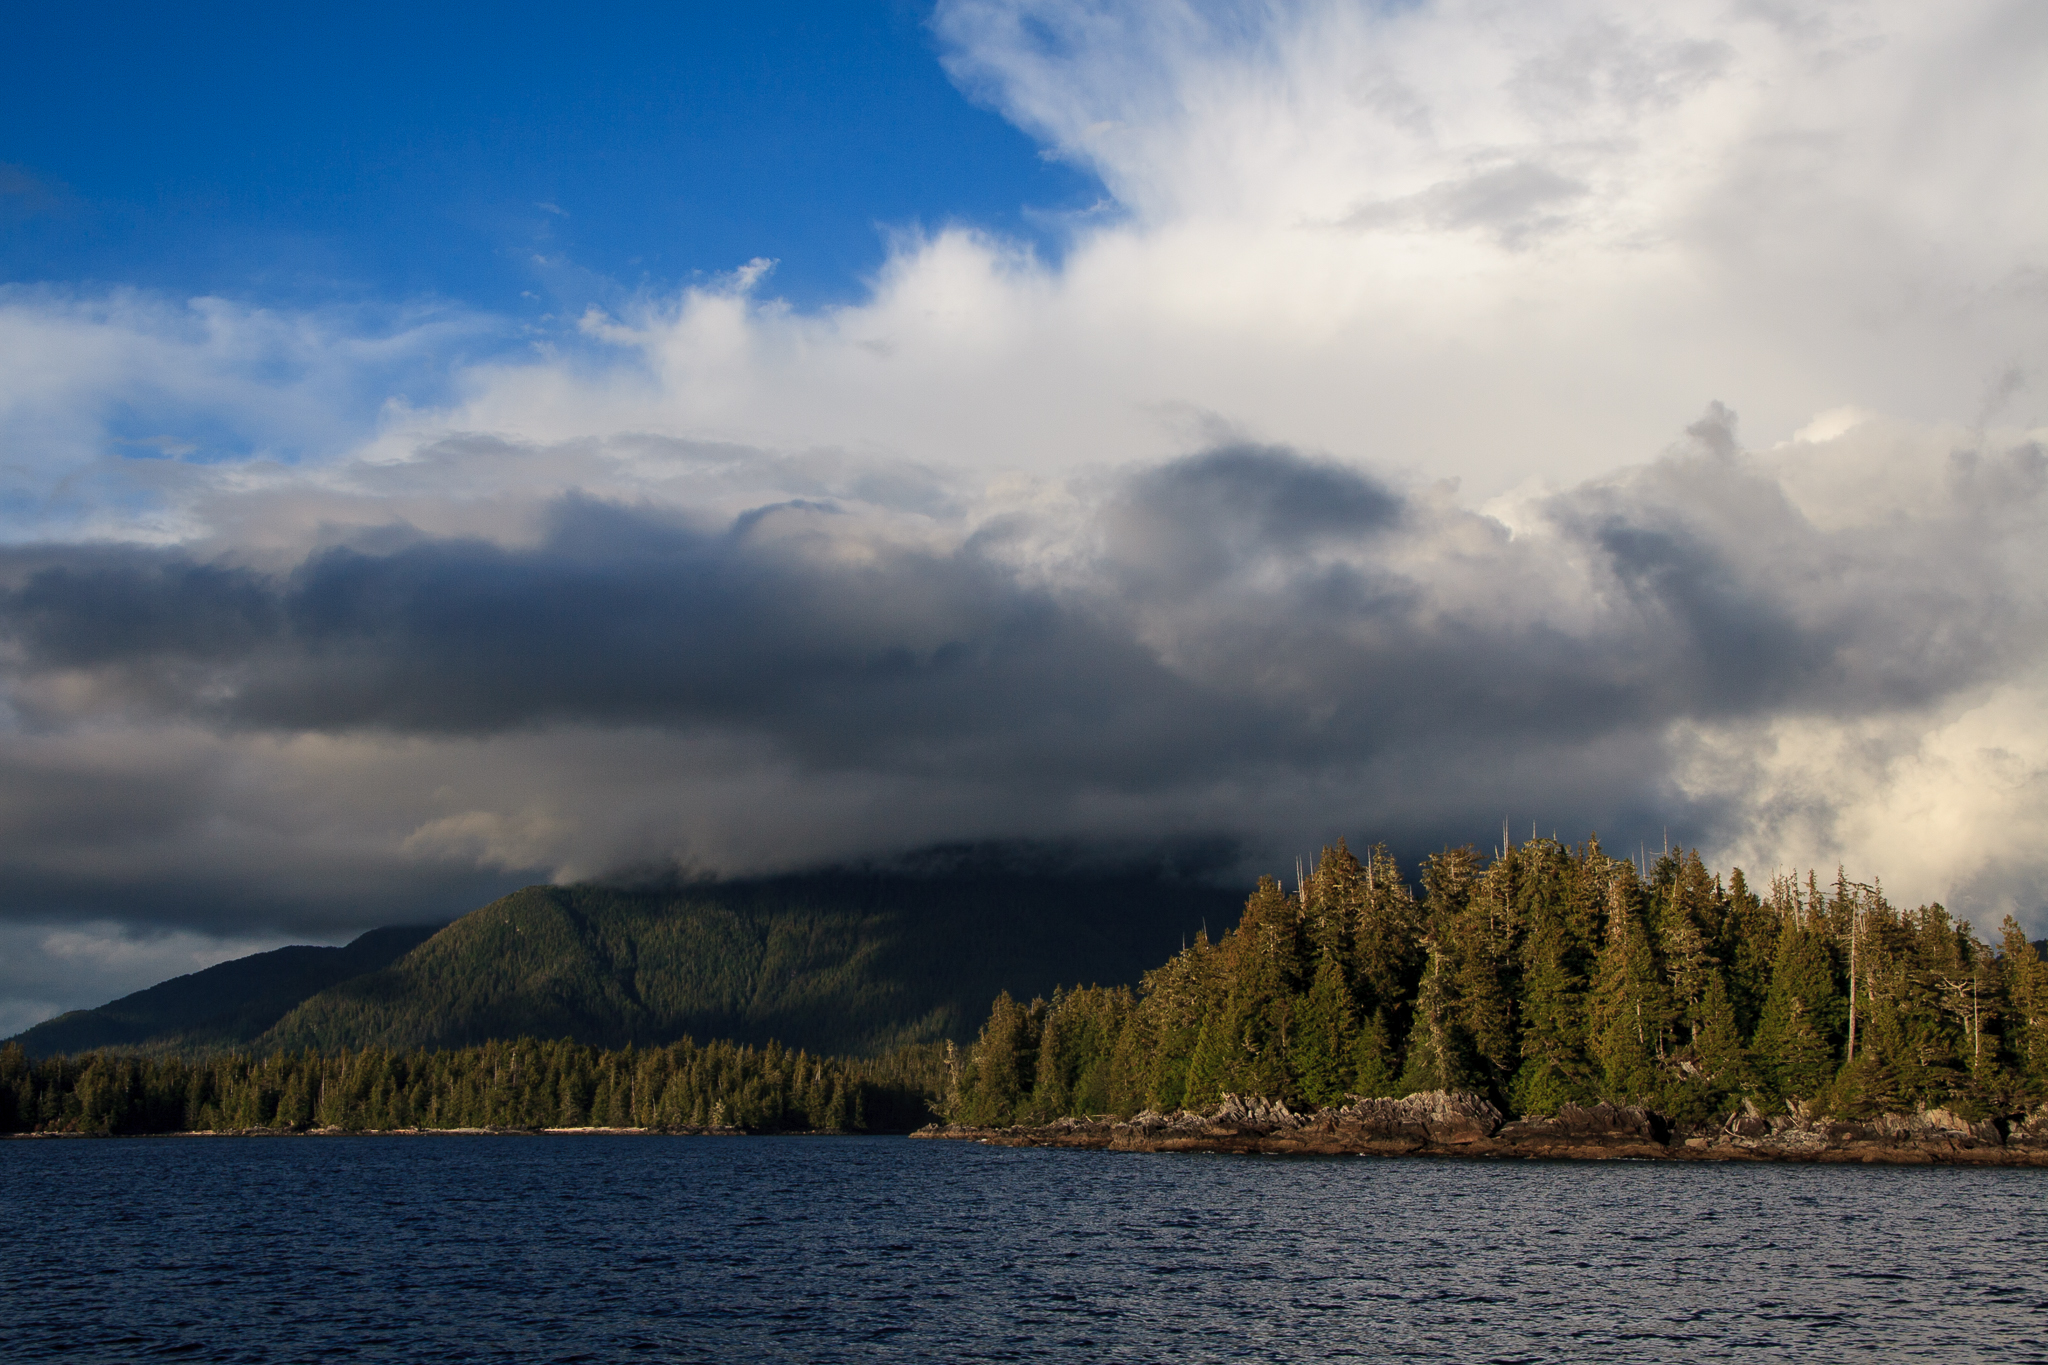 A typical view from the Achiever looking back on British Columbia's Great Bear Rainforest